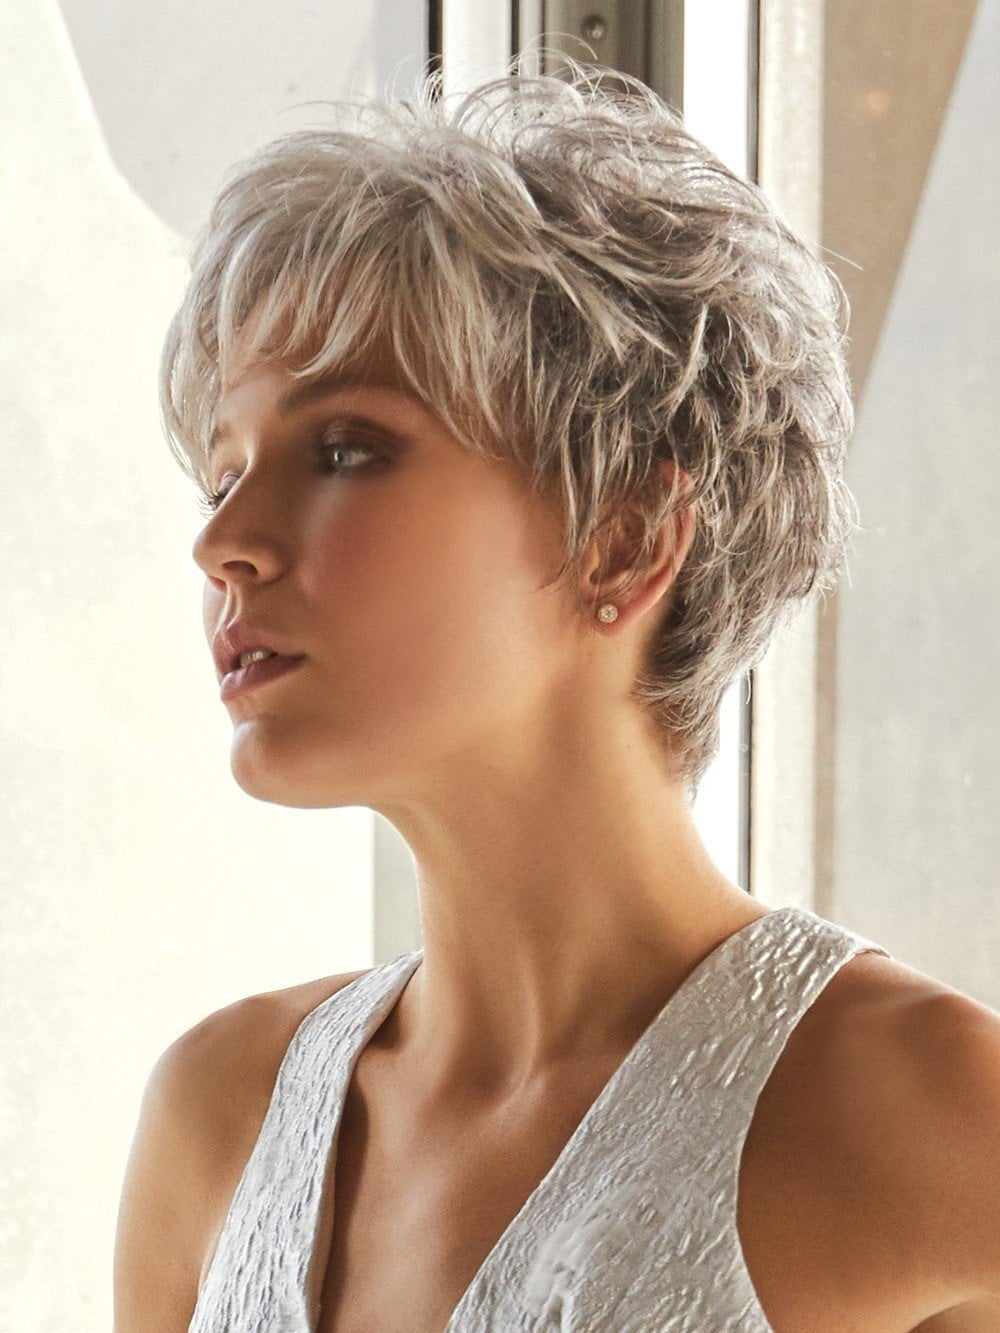 This soft layered short pixie can be brushed over the top to create a touch of height.